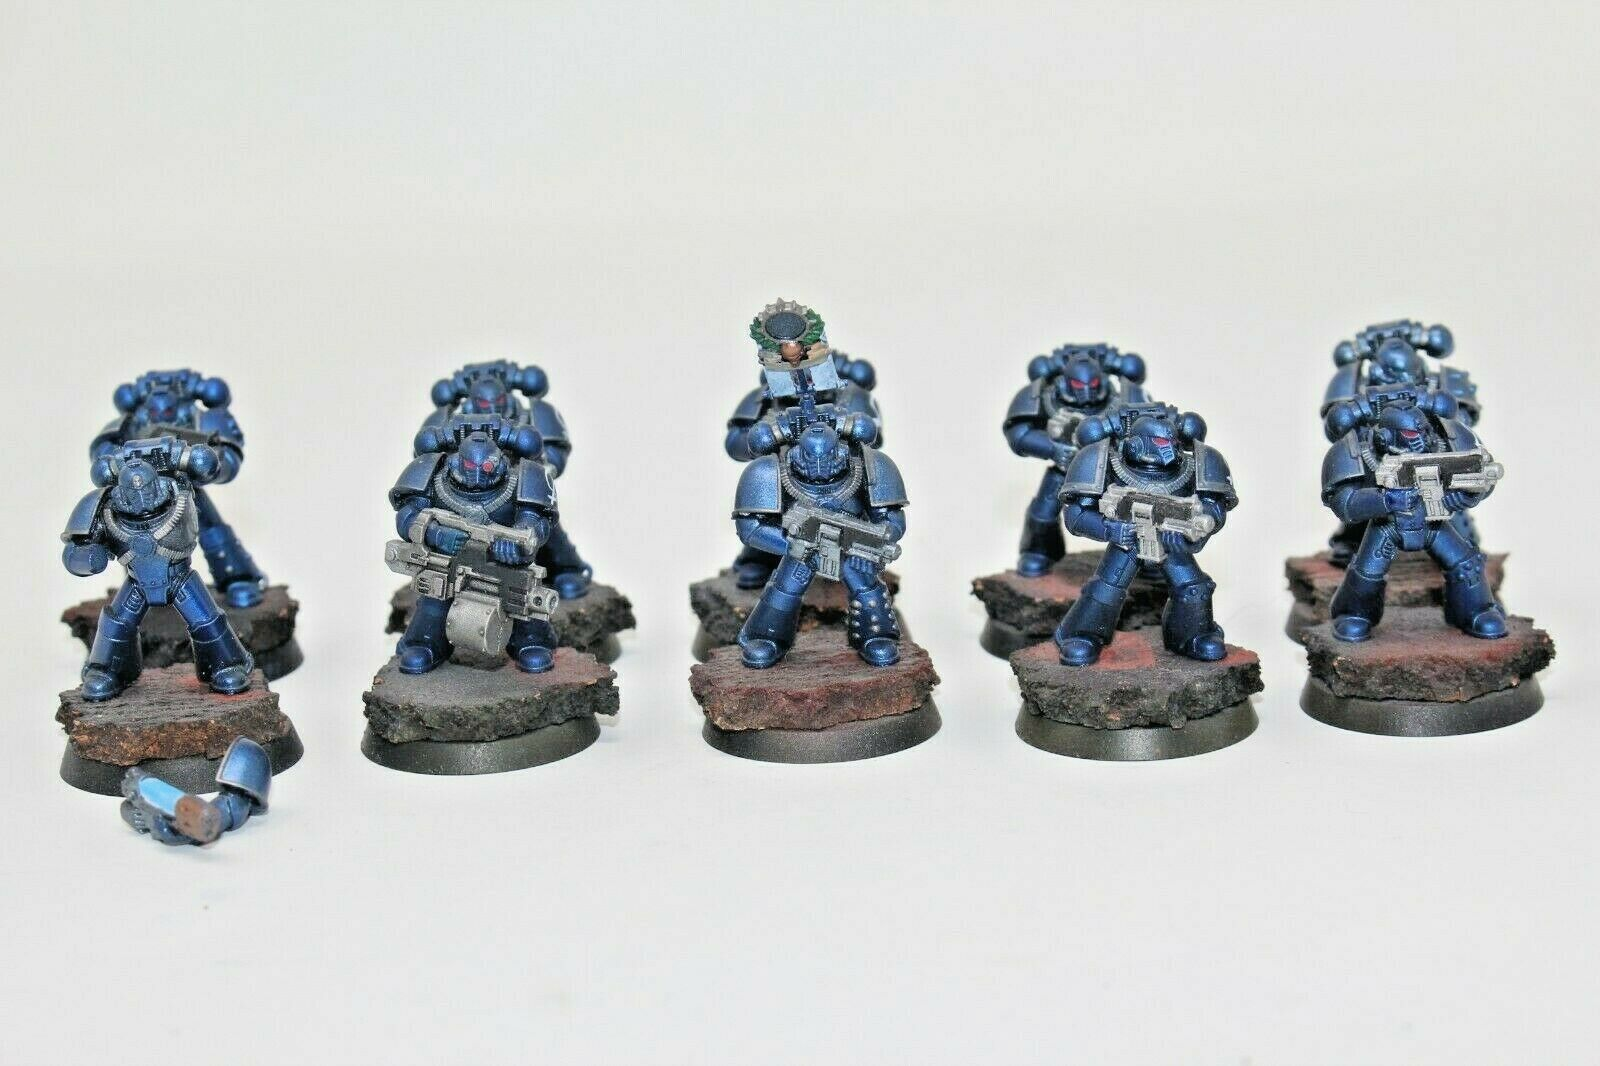 100% autentico Warhammer Warhammer Warhammer spazio Marines Mark IV Tactical Squad Well Painted - JYS55  fino al 42% di sconto